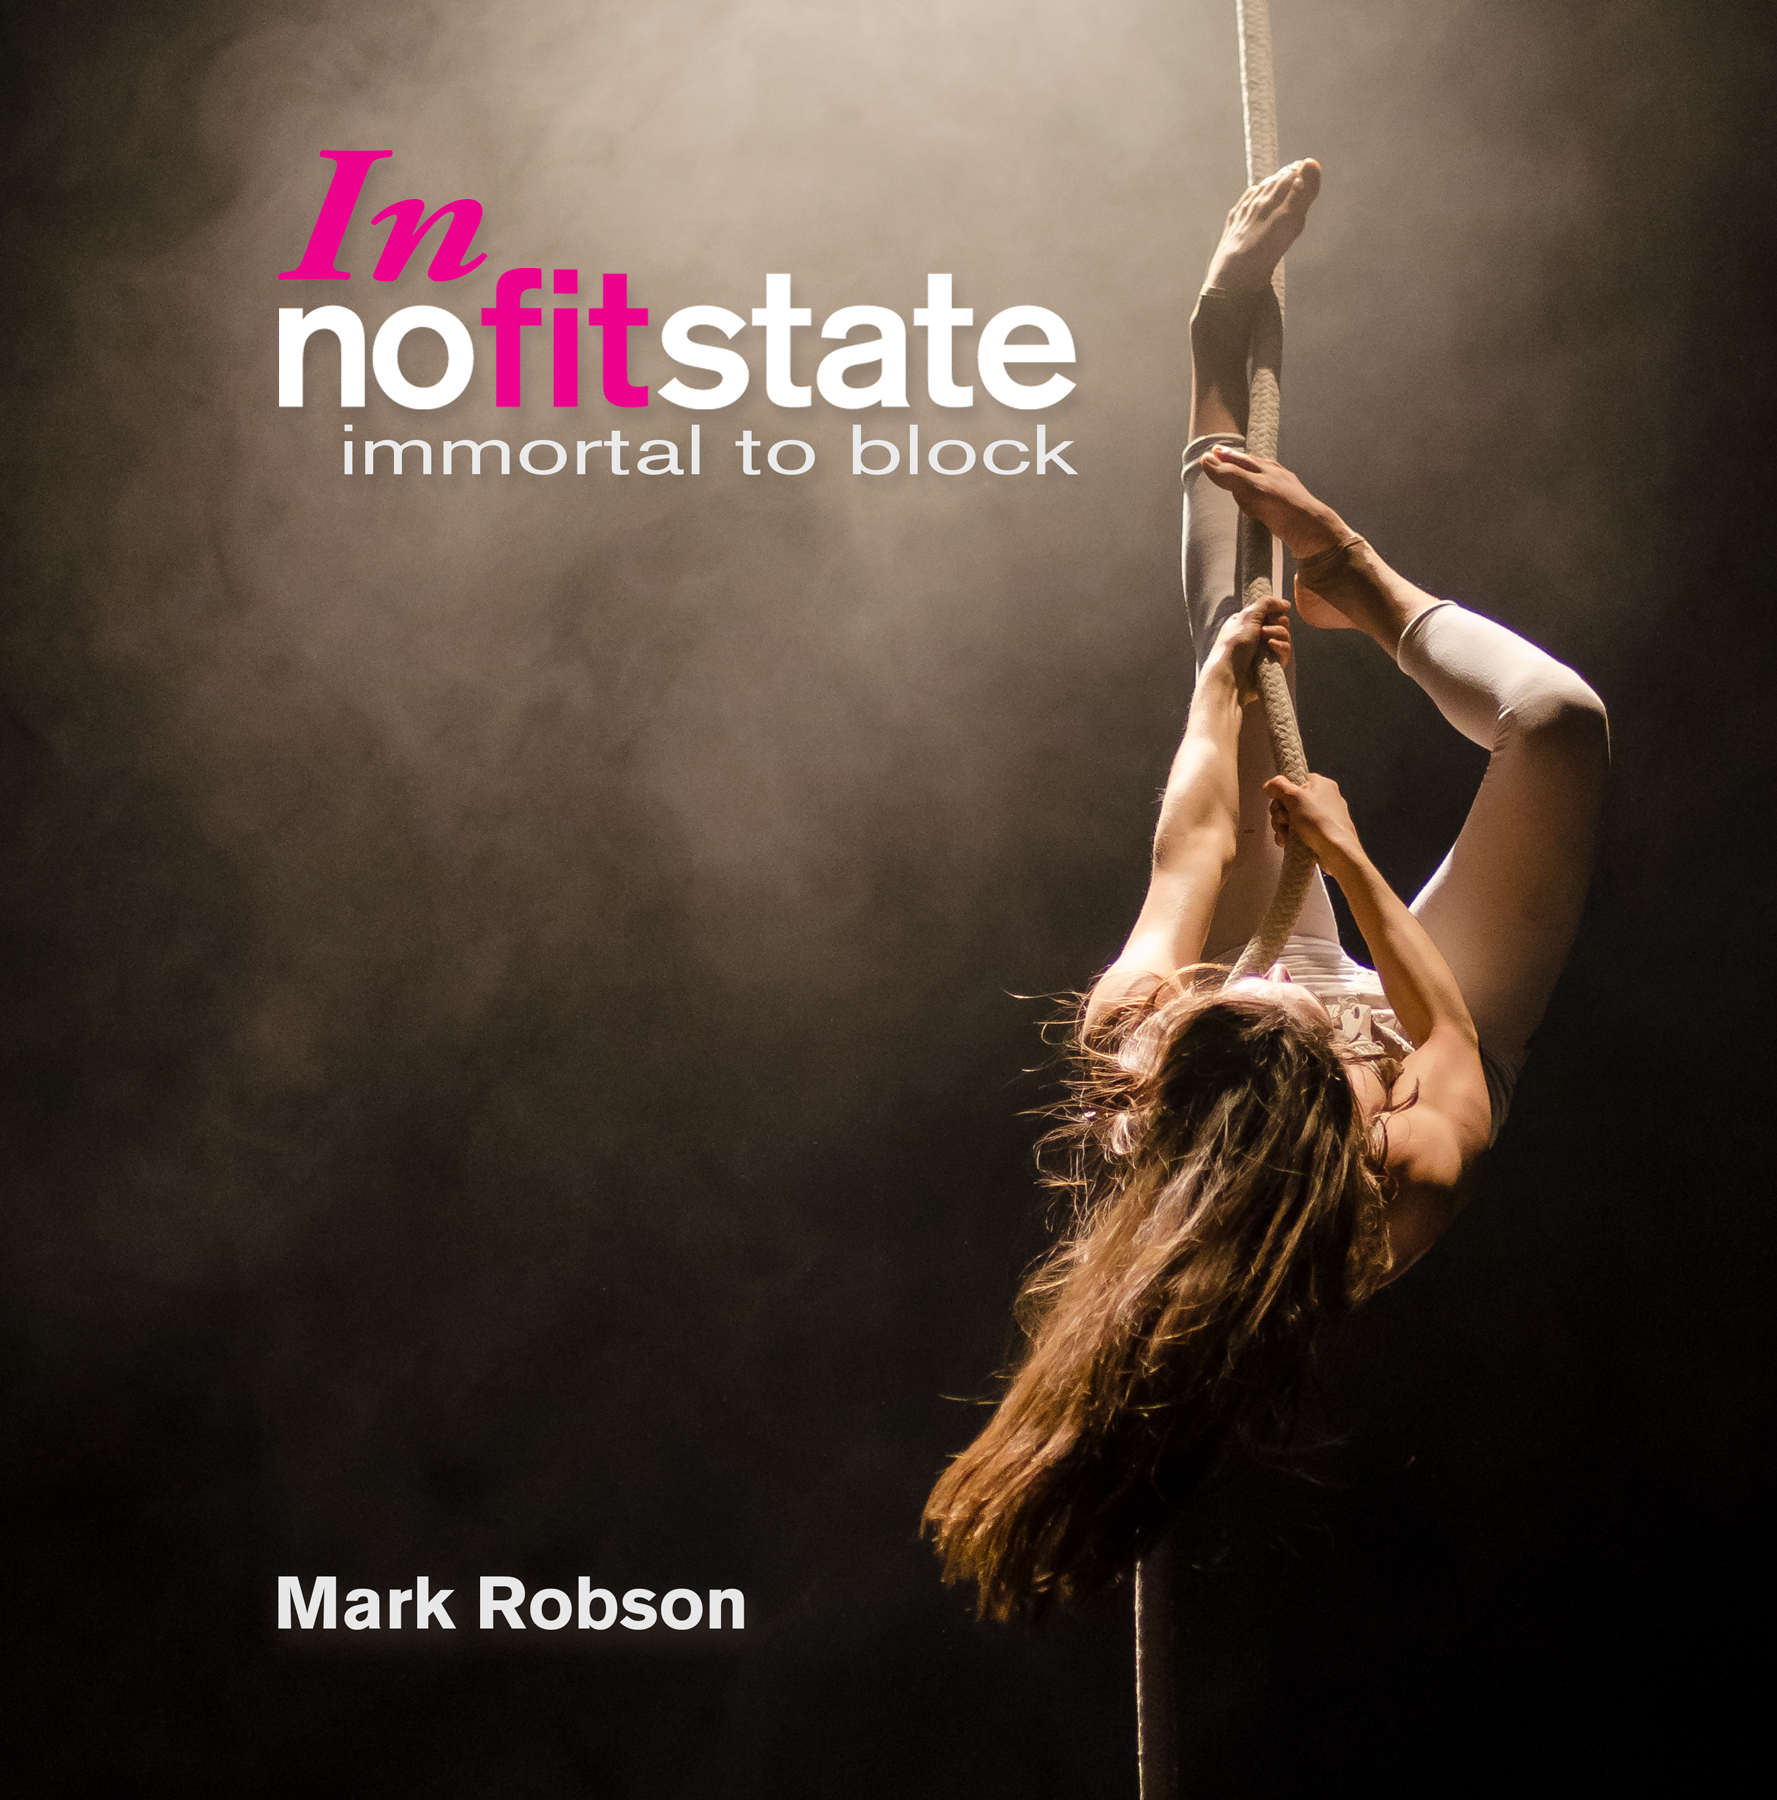 Front cover of In nofitstate